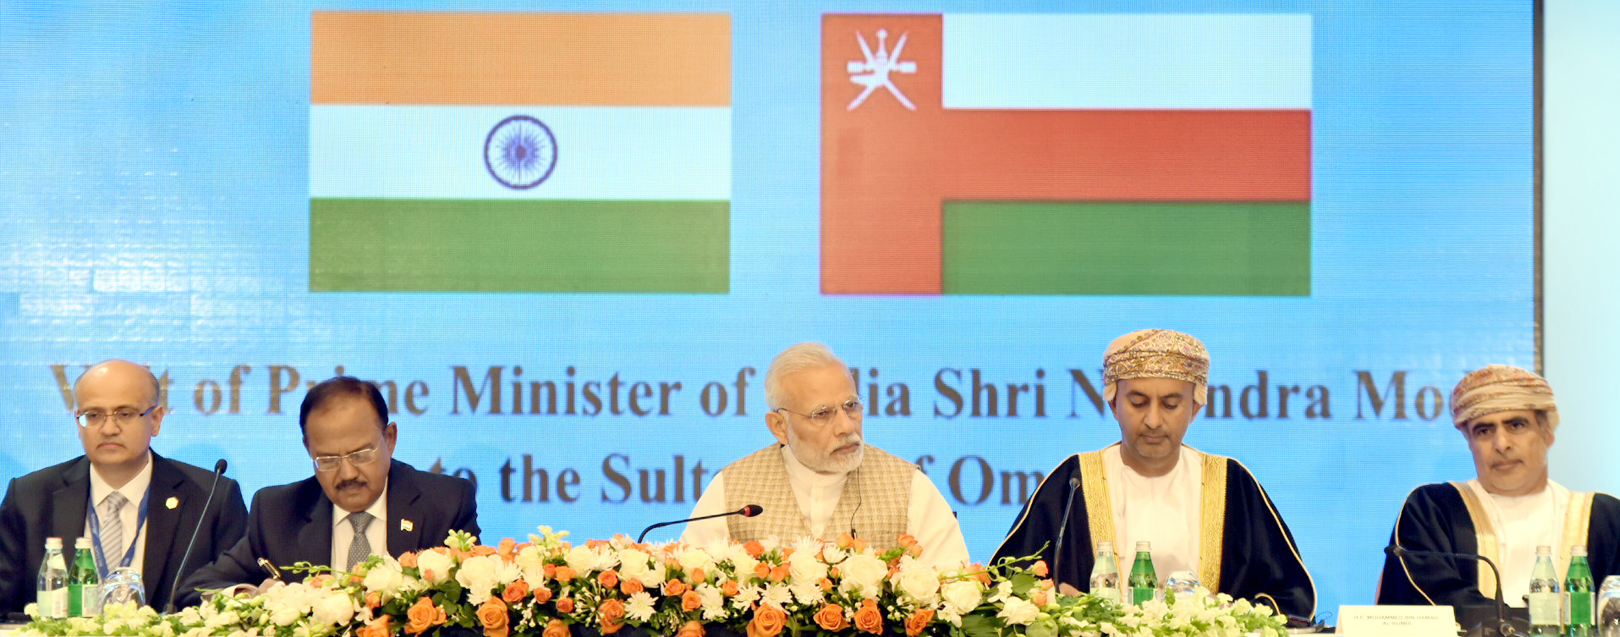 India, Oman sign 8 agreements during PM Modi visit